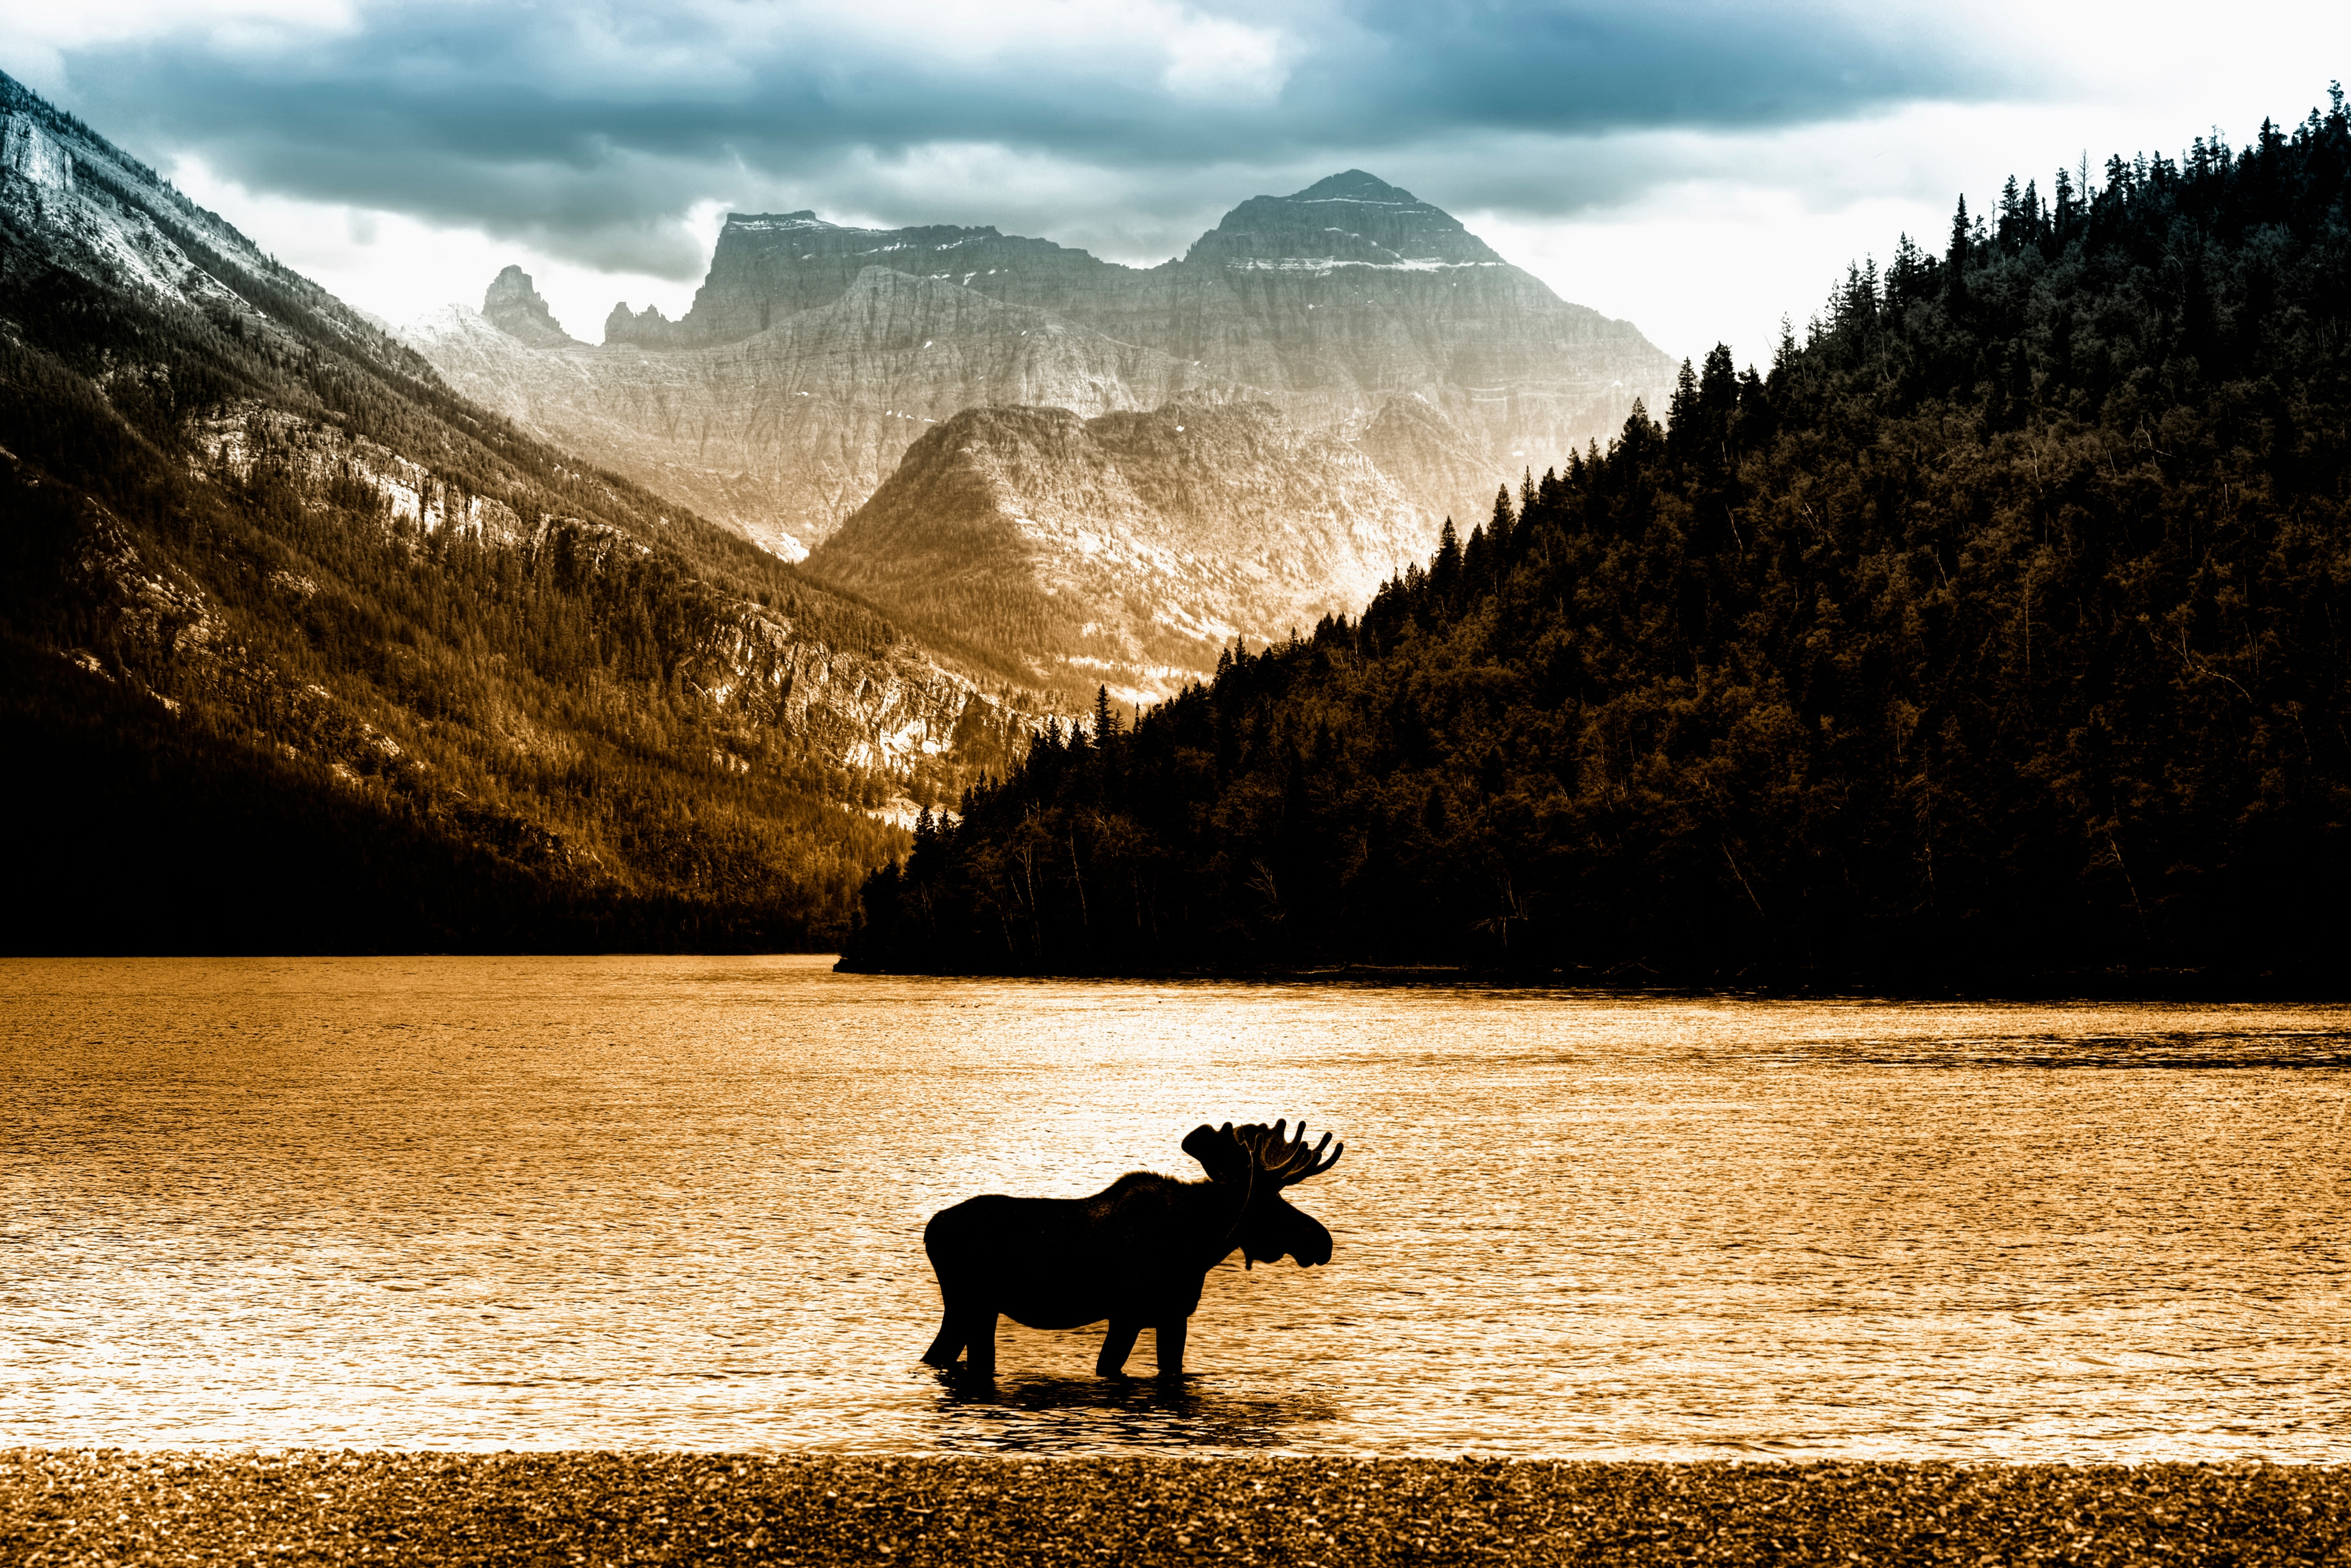 Fototapete »Moose in Waterton Lake« günstig online kaufen